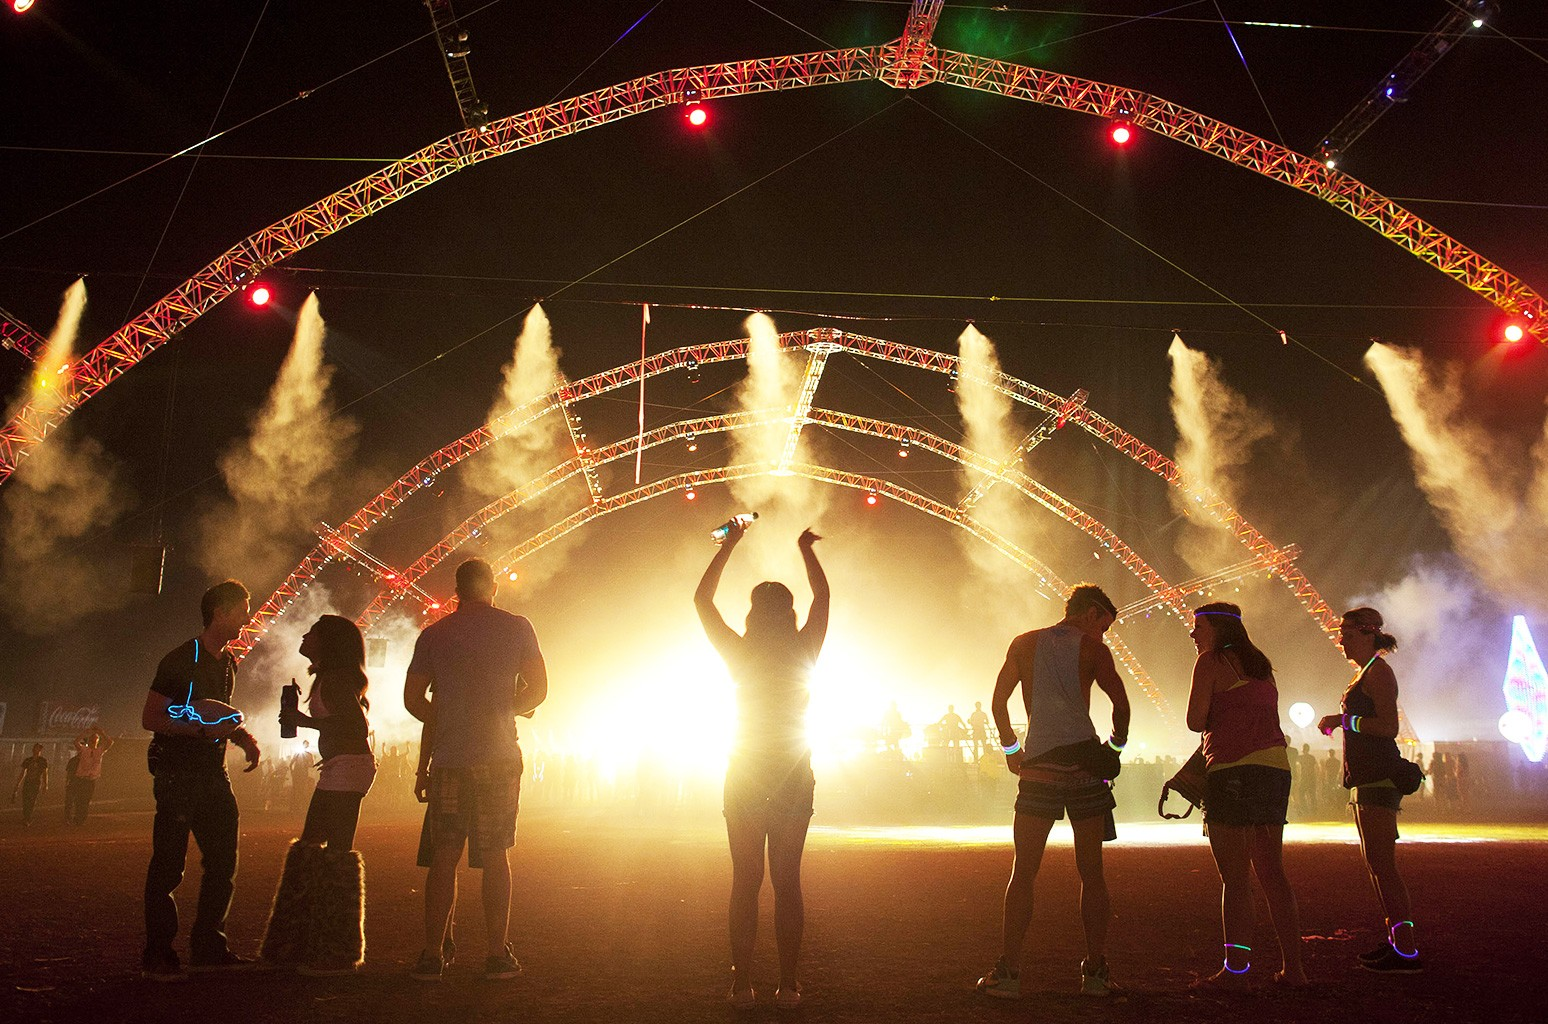 Carnival goers dance near the back of the crowd at one of six stages during the third day of the Electric Daisy Carnival in Las Vegas.